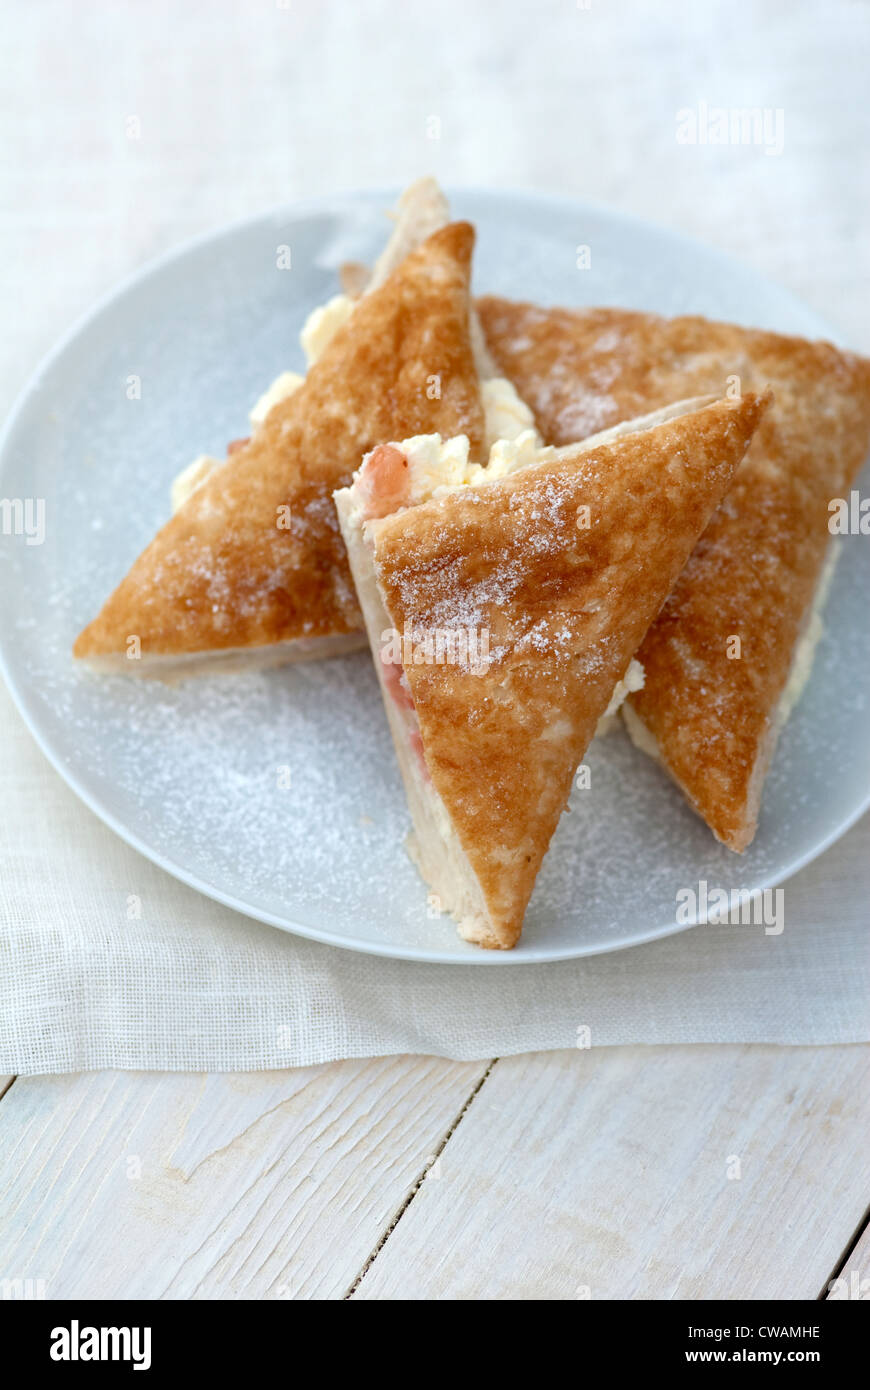 food photography of apple and strawberry cream turnover bun - Stock Image